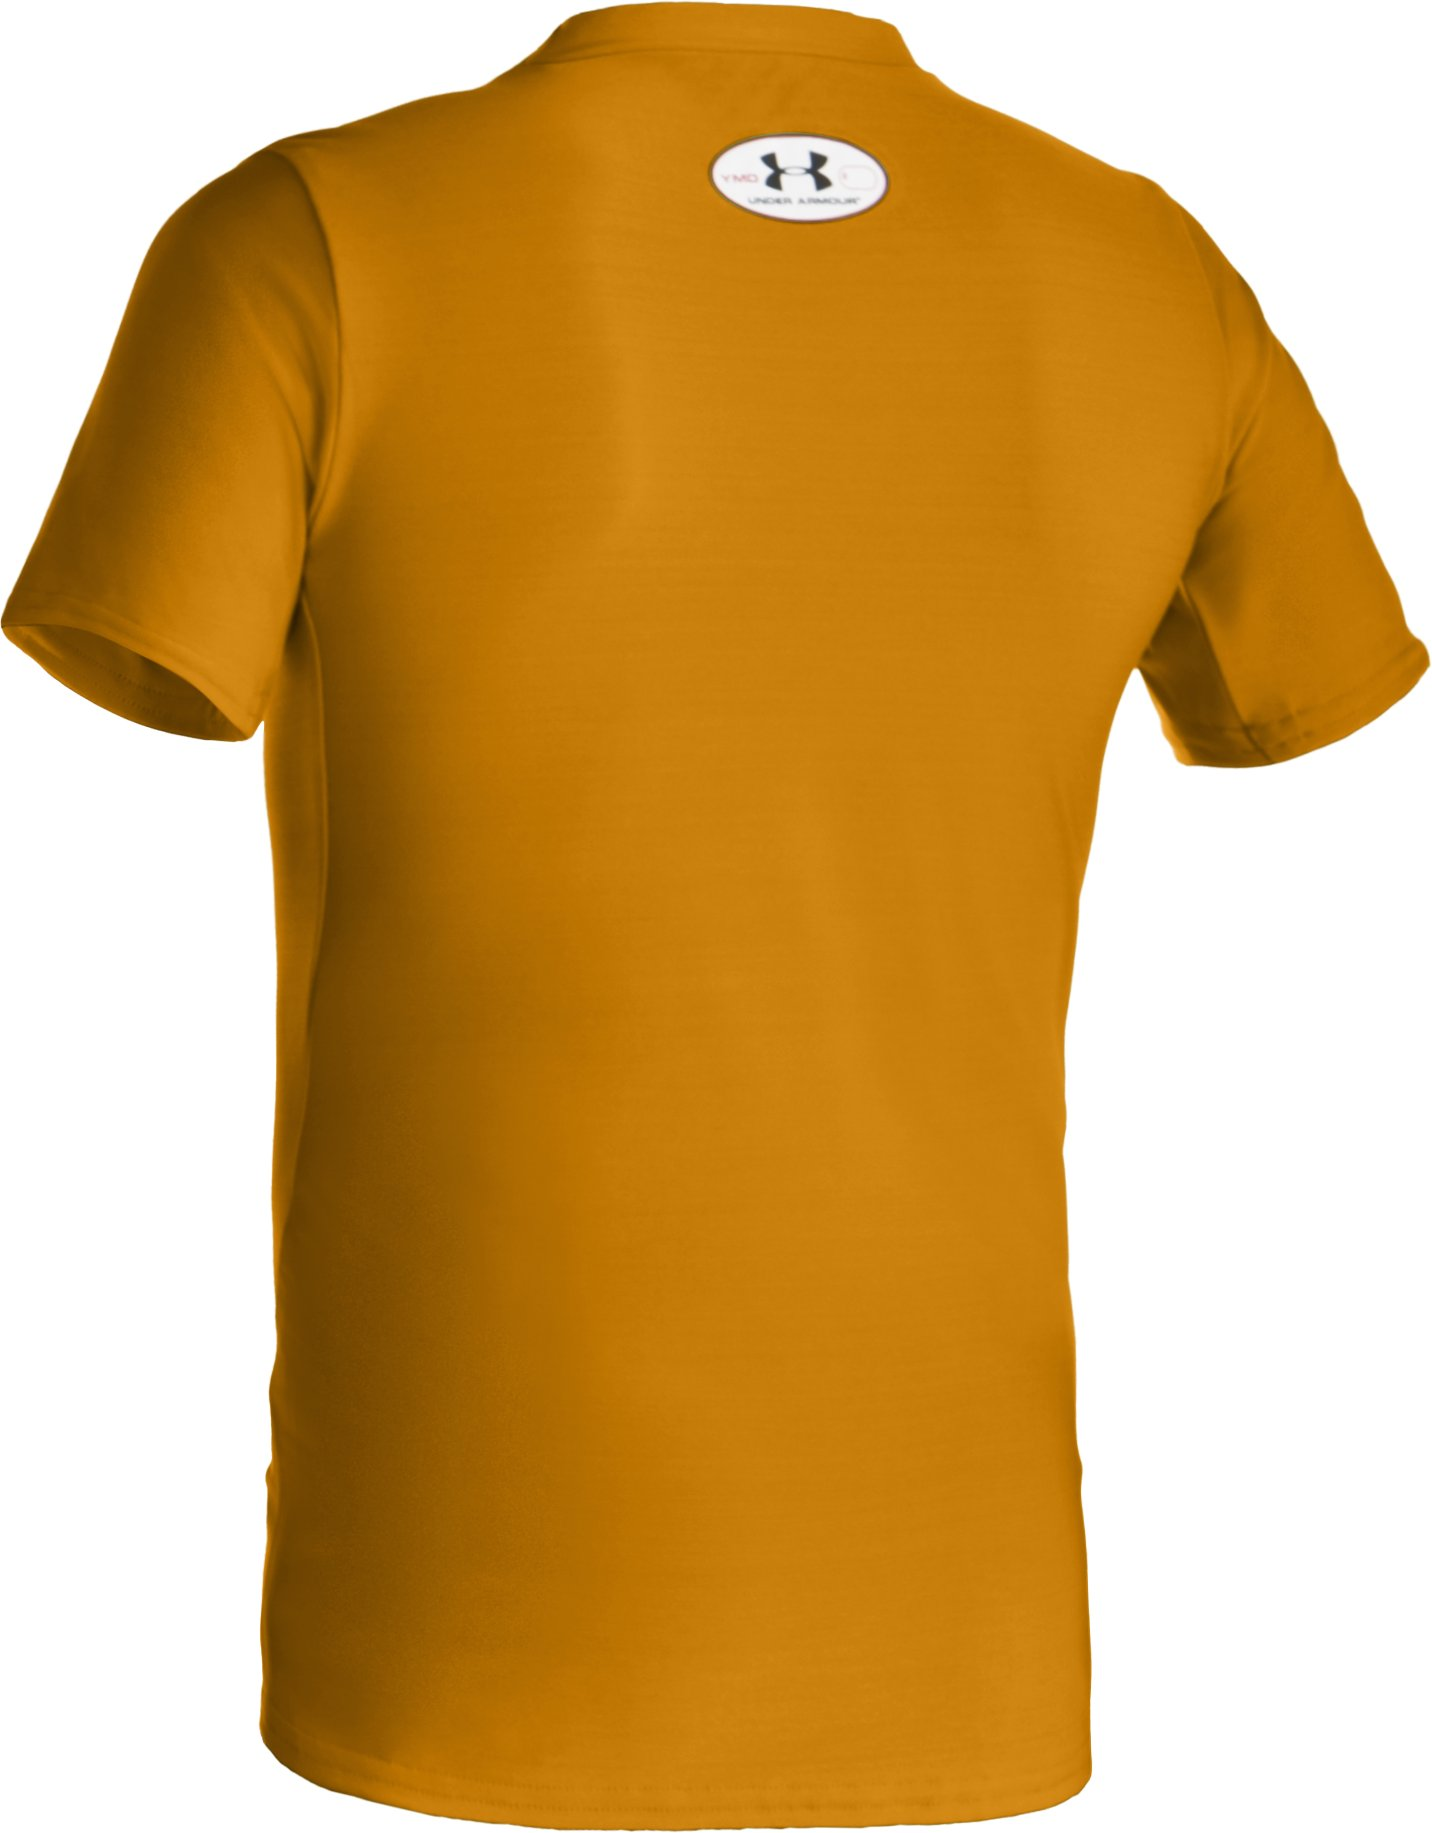 Boys' Short Sleeve HeatGear® T-Shirt II, Steeltown Gold, undefined